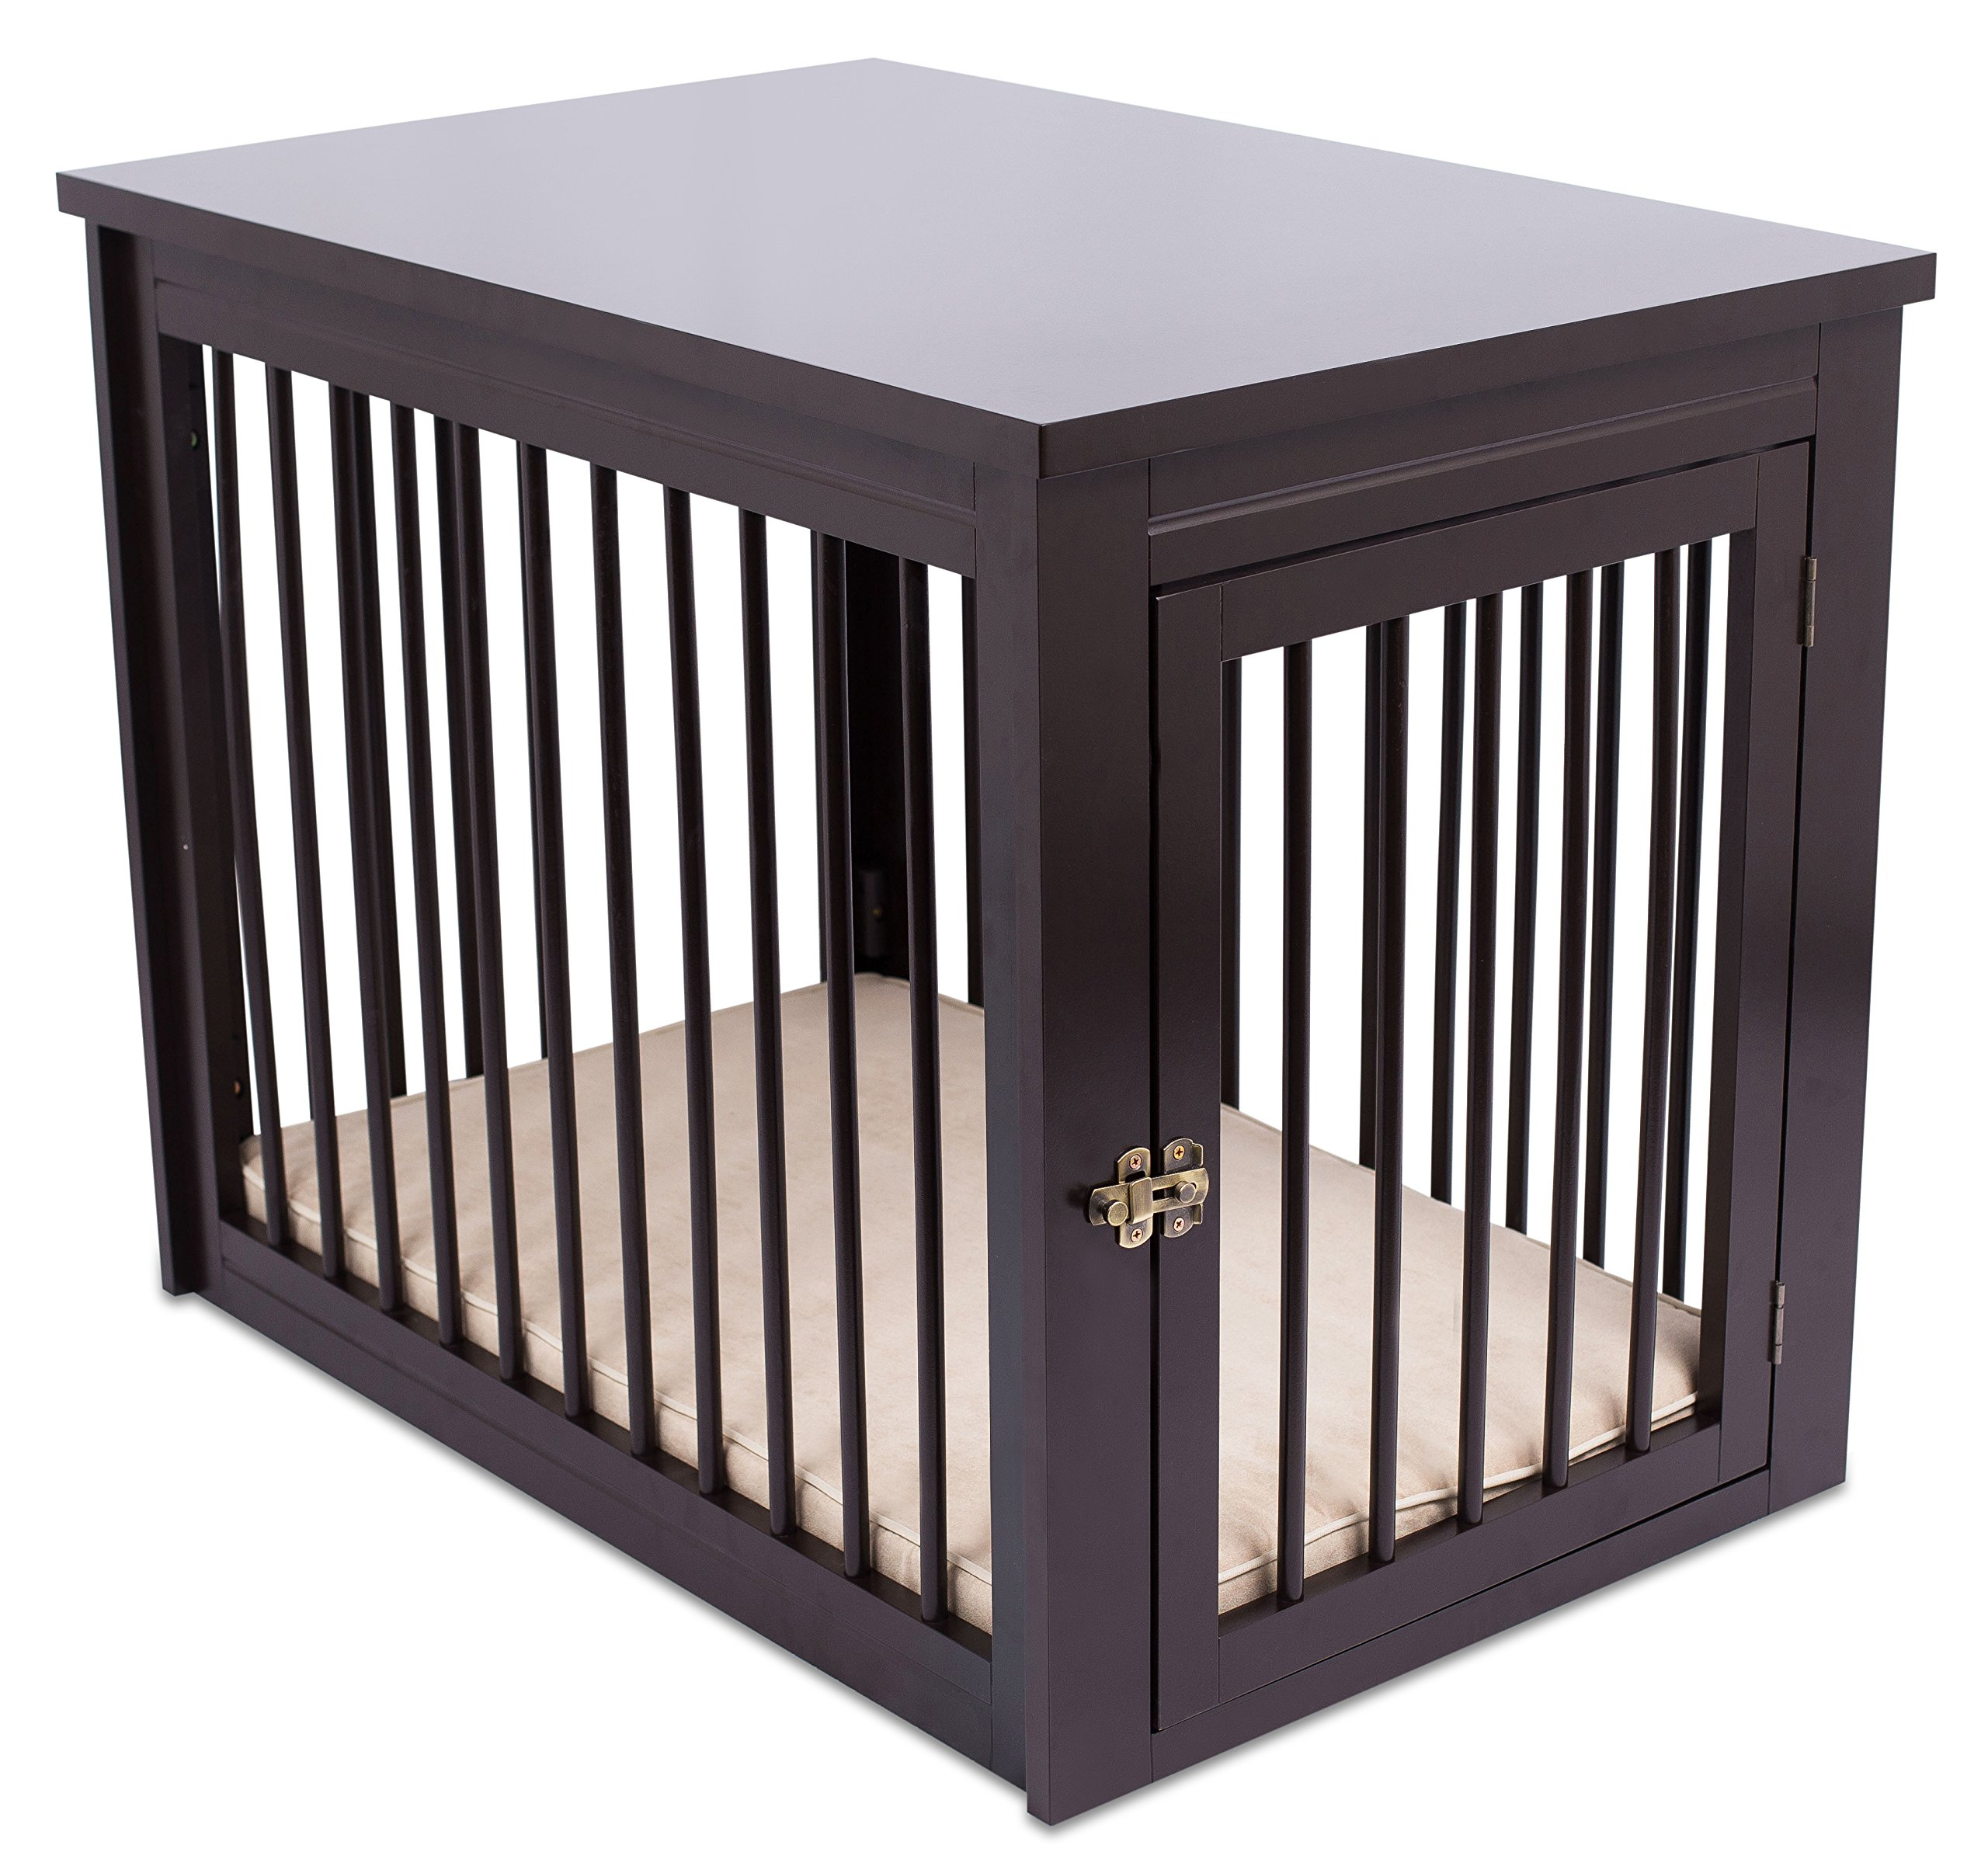 Internet's Best Decorative Dog Kennel with Pet Bed | Wooden Dog House | Large Indoor Pet Crate Side Table | Espresso